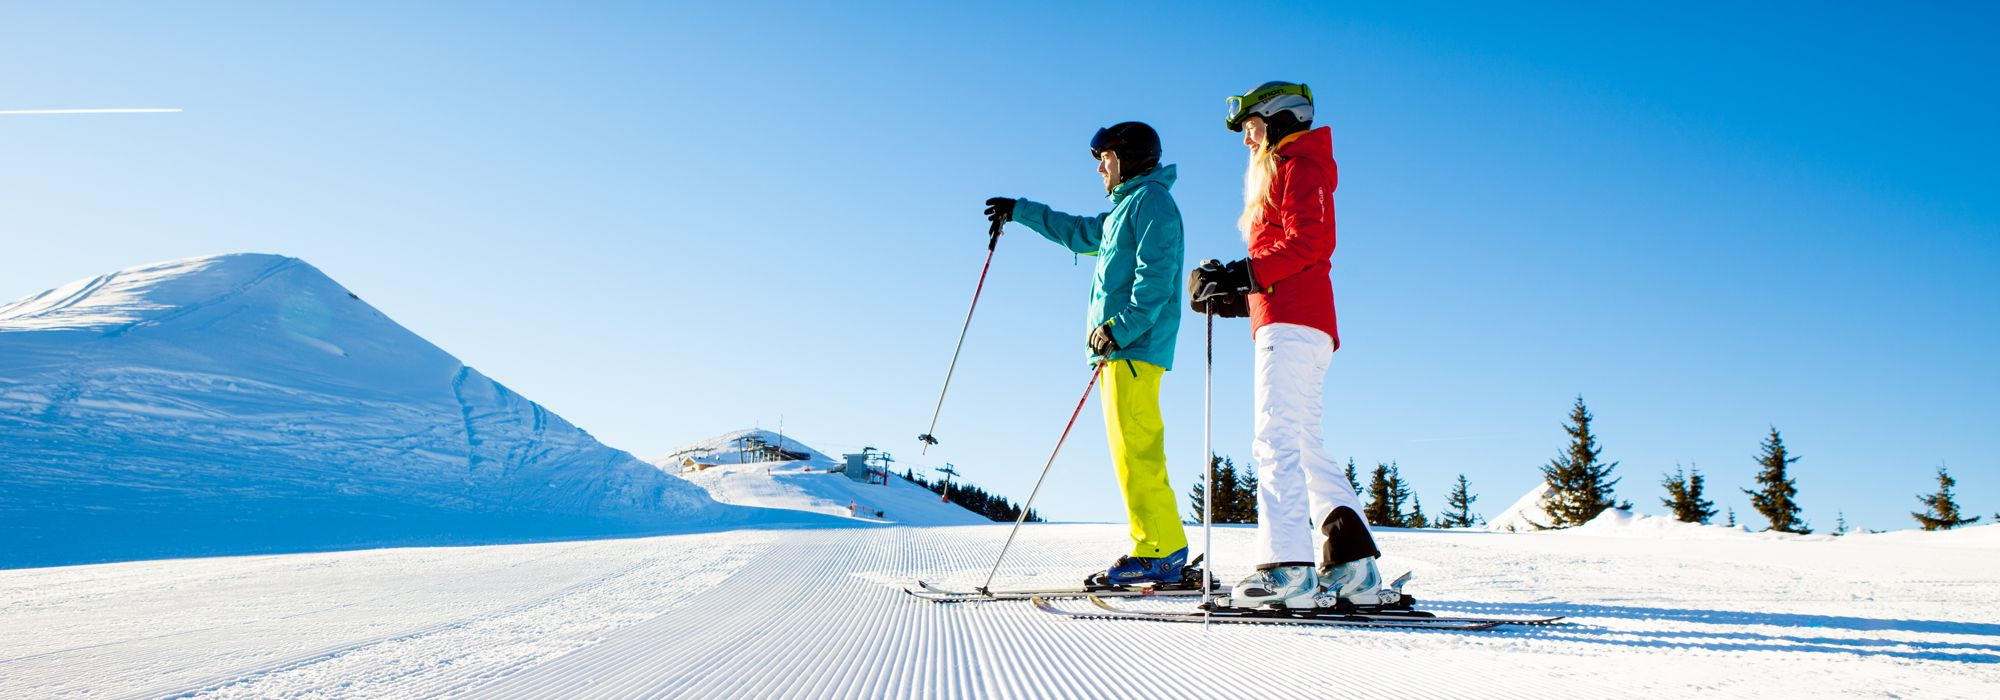 Skiing holidays for the whole family in a winter wonderland